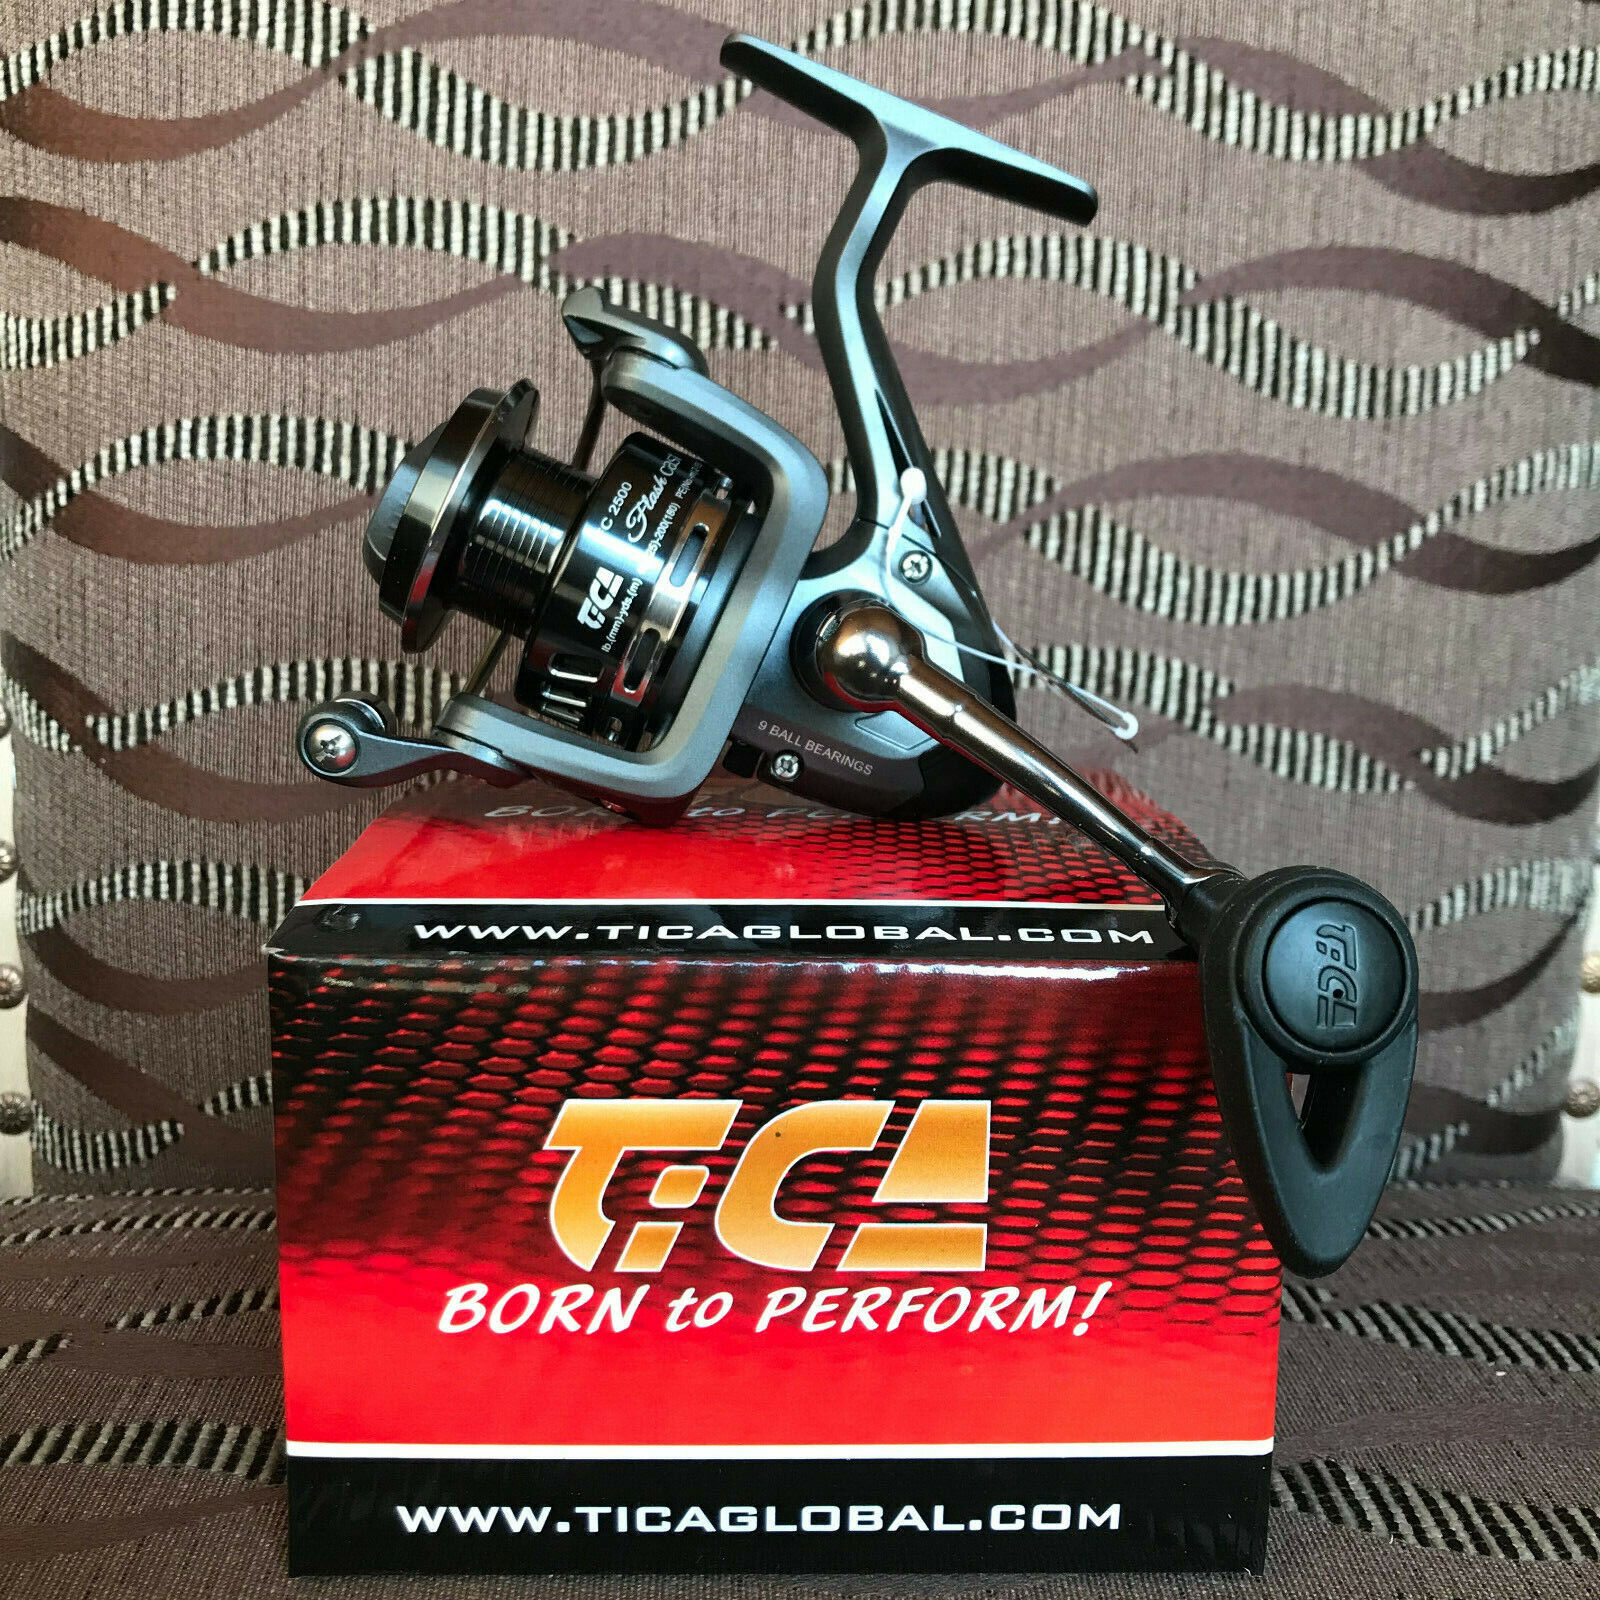 TiCa Flash Cast Cast Cast FC2500 Spinnrolle 870ced